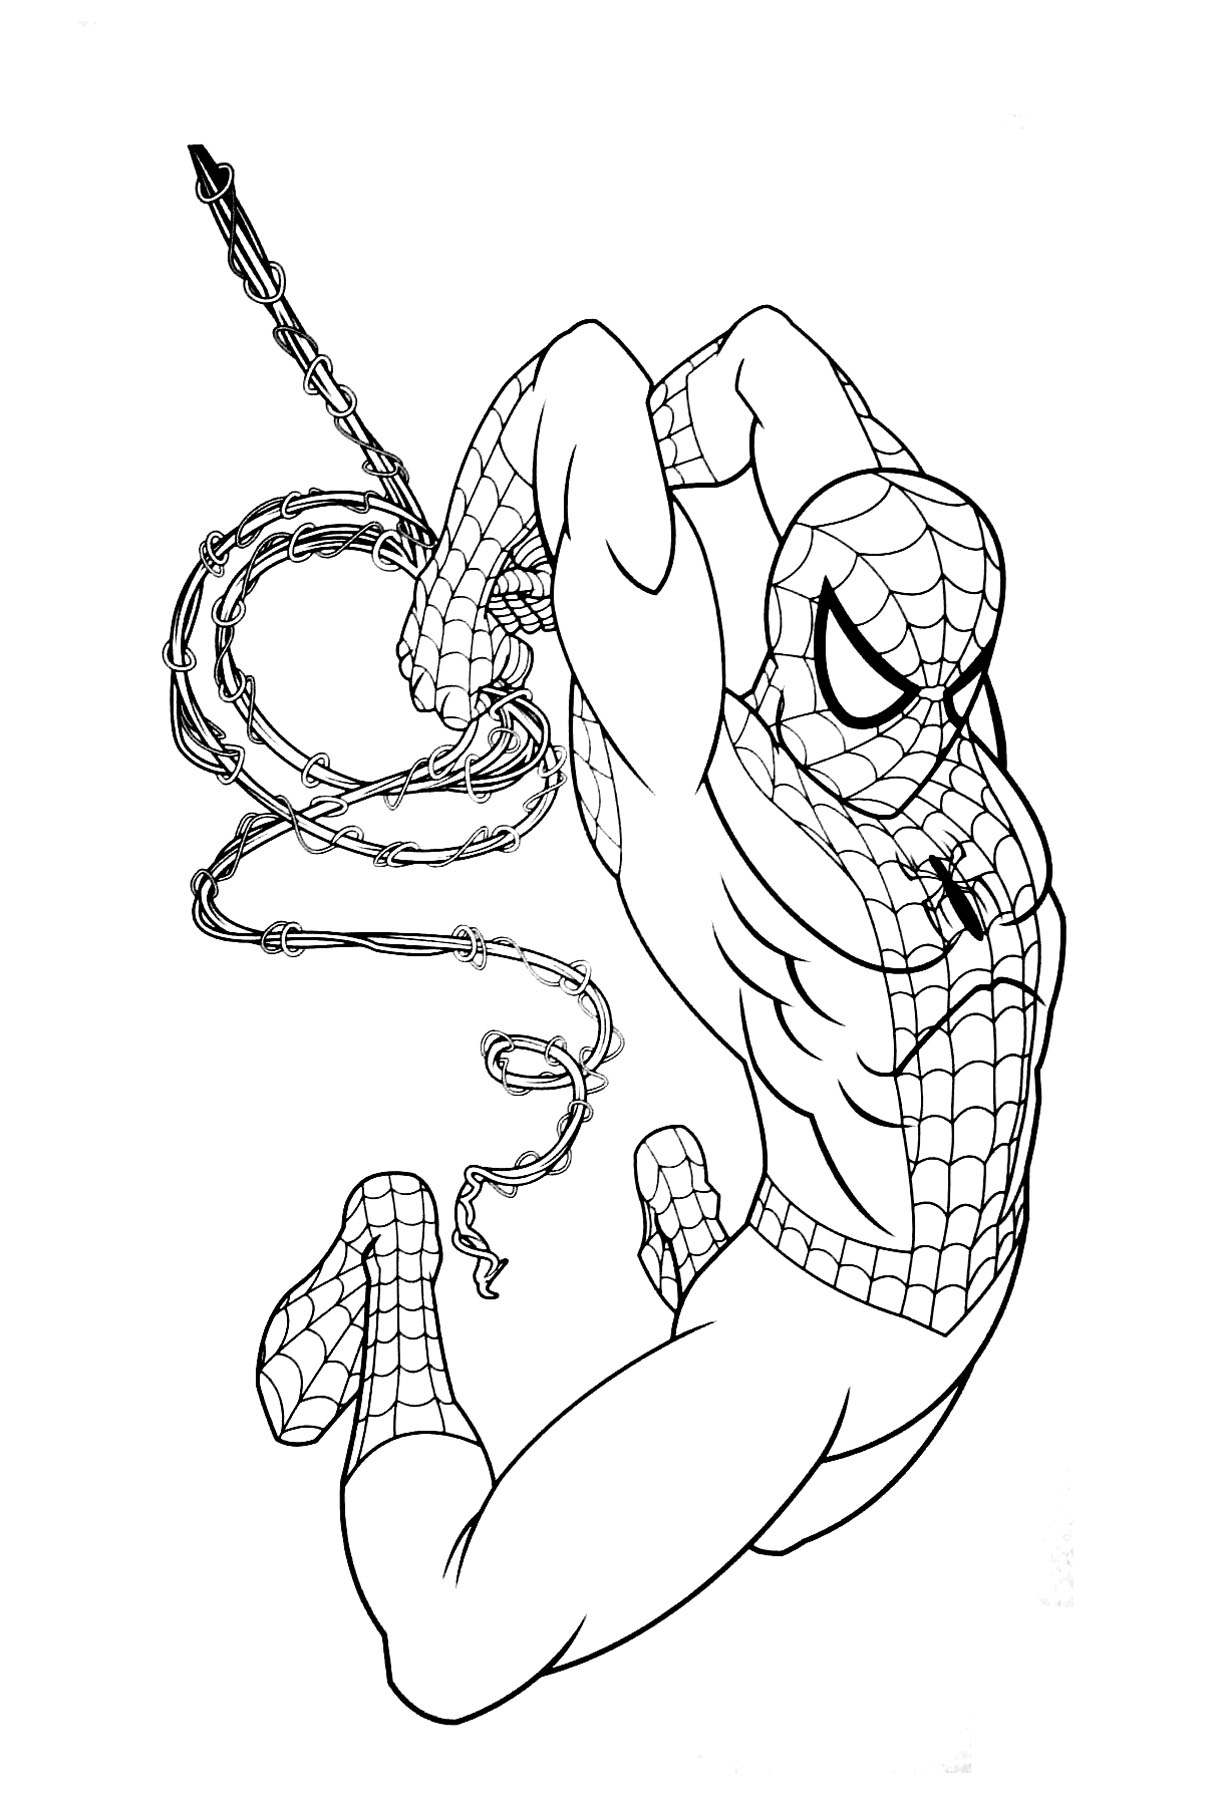 coloring spiderman for kids free printable spiderman coloring pages for kids coloring spiderman for kids